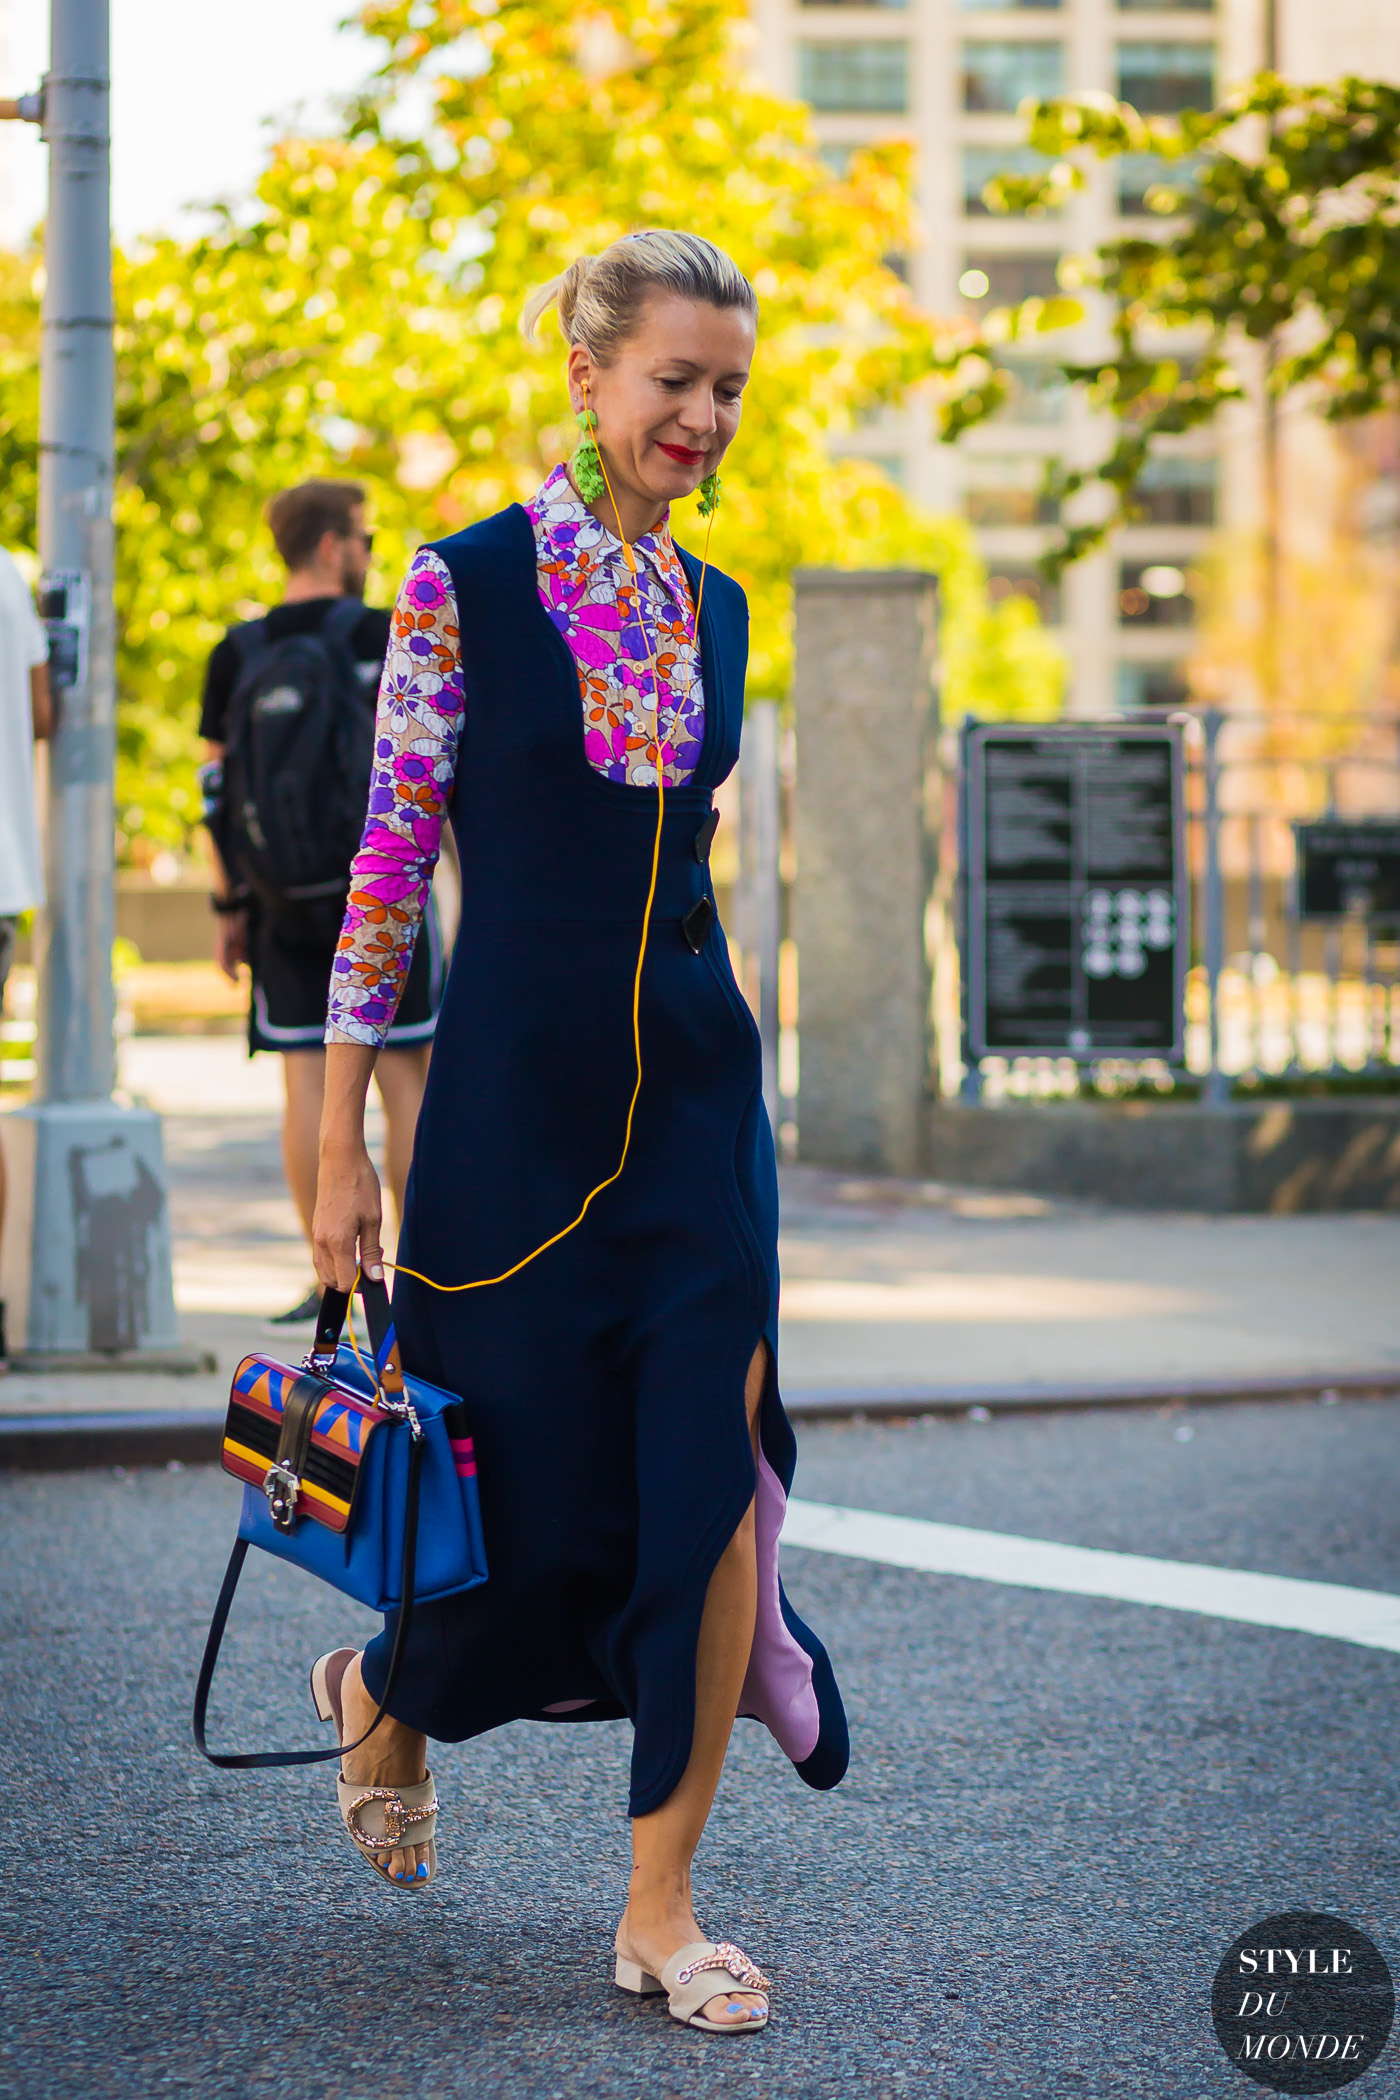 Natalie Joos by STYLEDUMONDE Street Style Fashion Photography